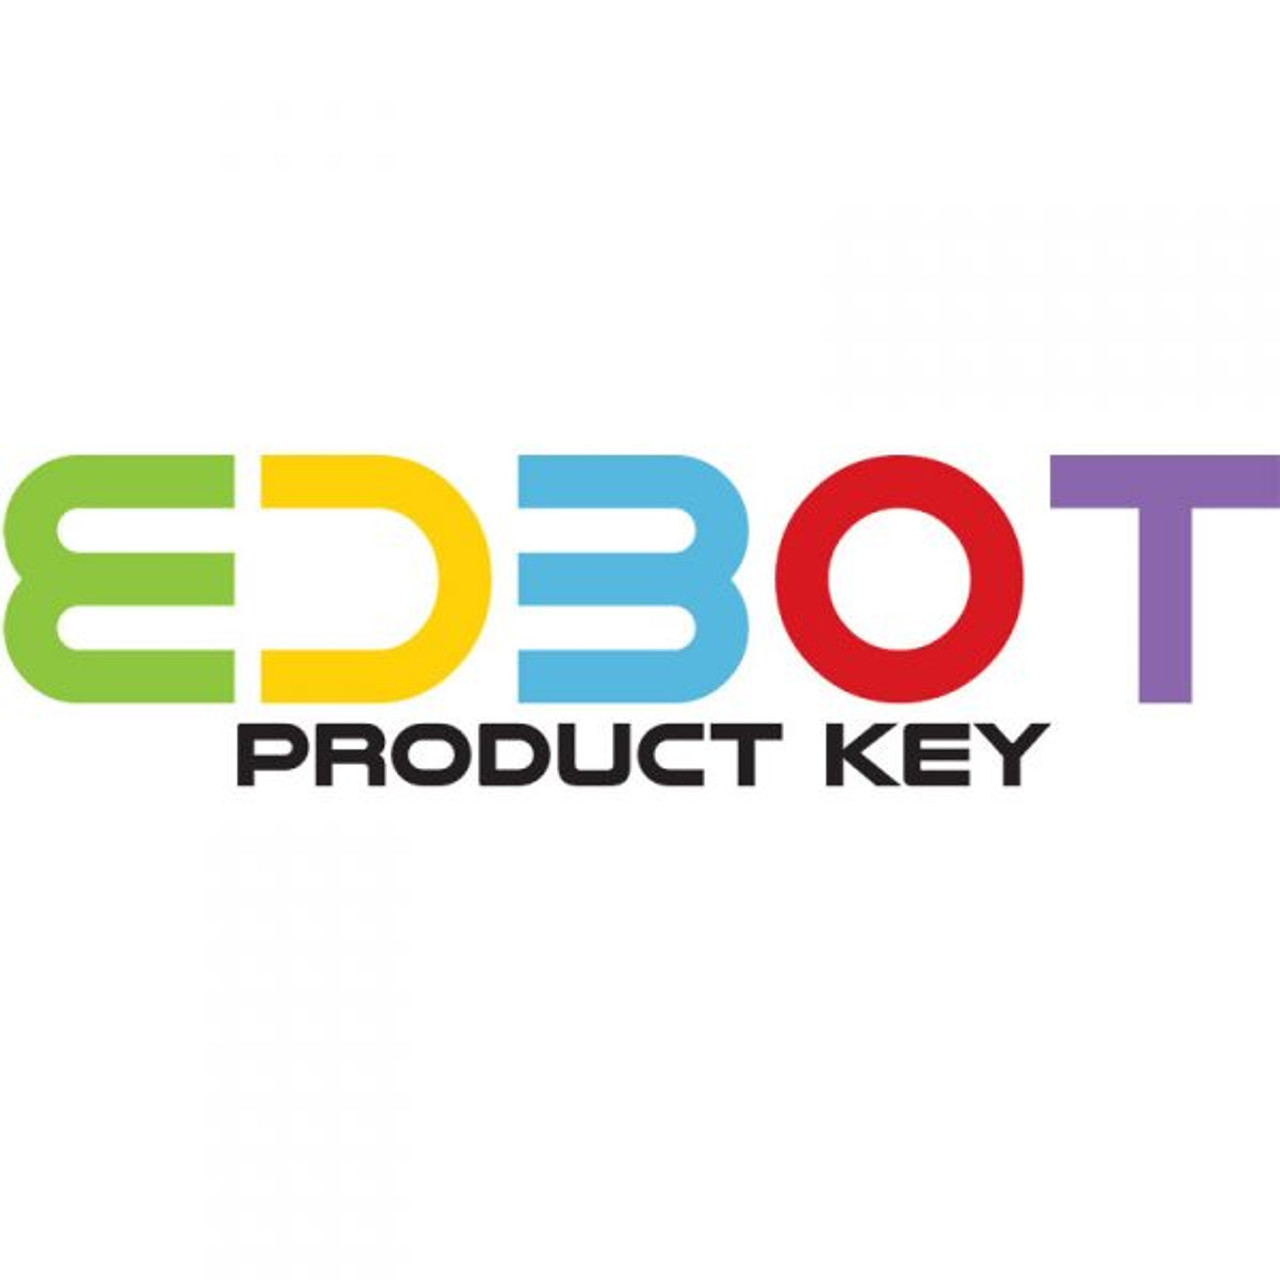 Edbot Software Product Key - ROBOTIS MINI